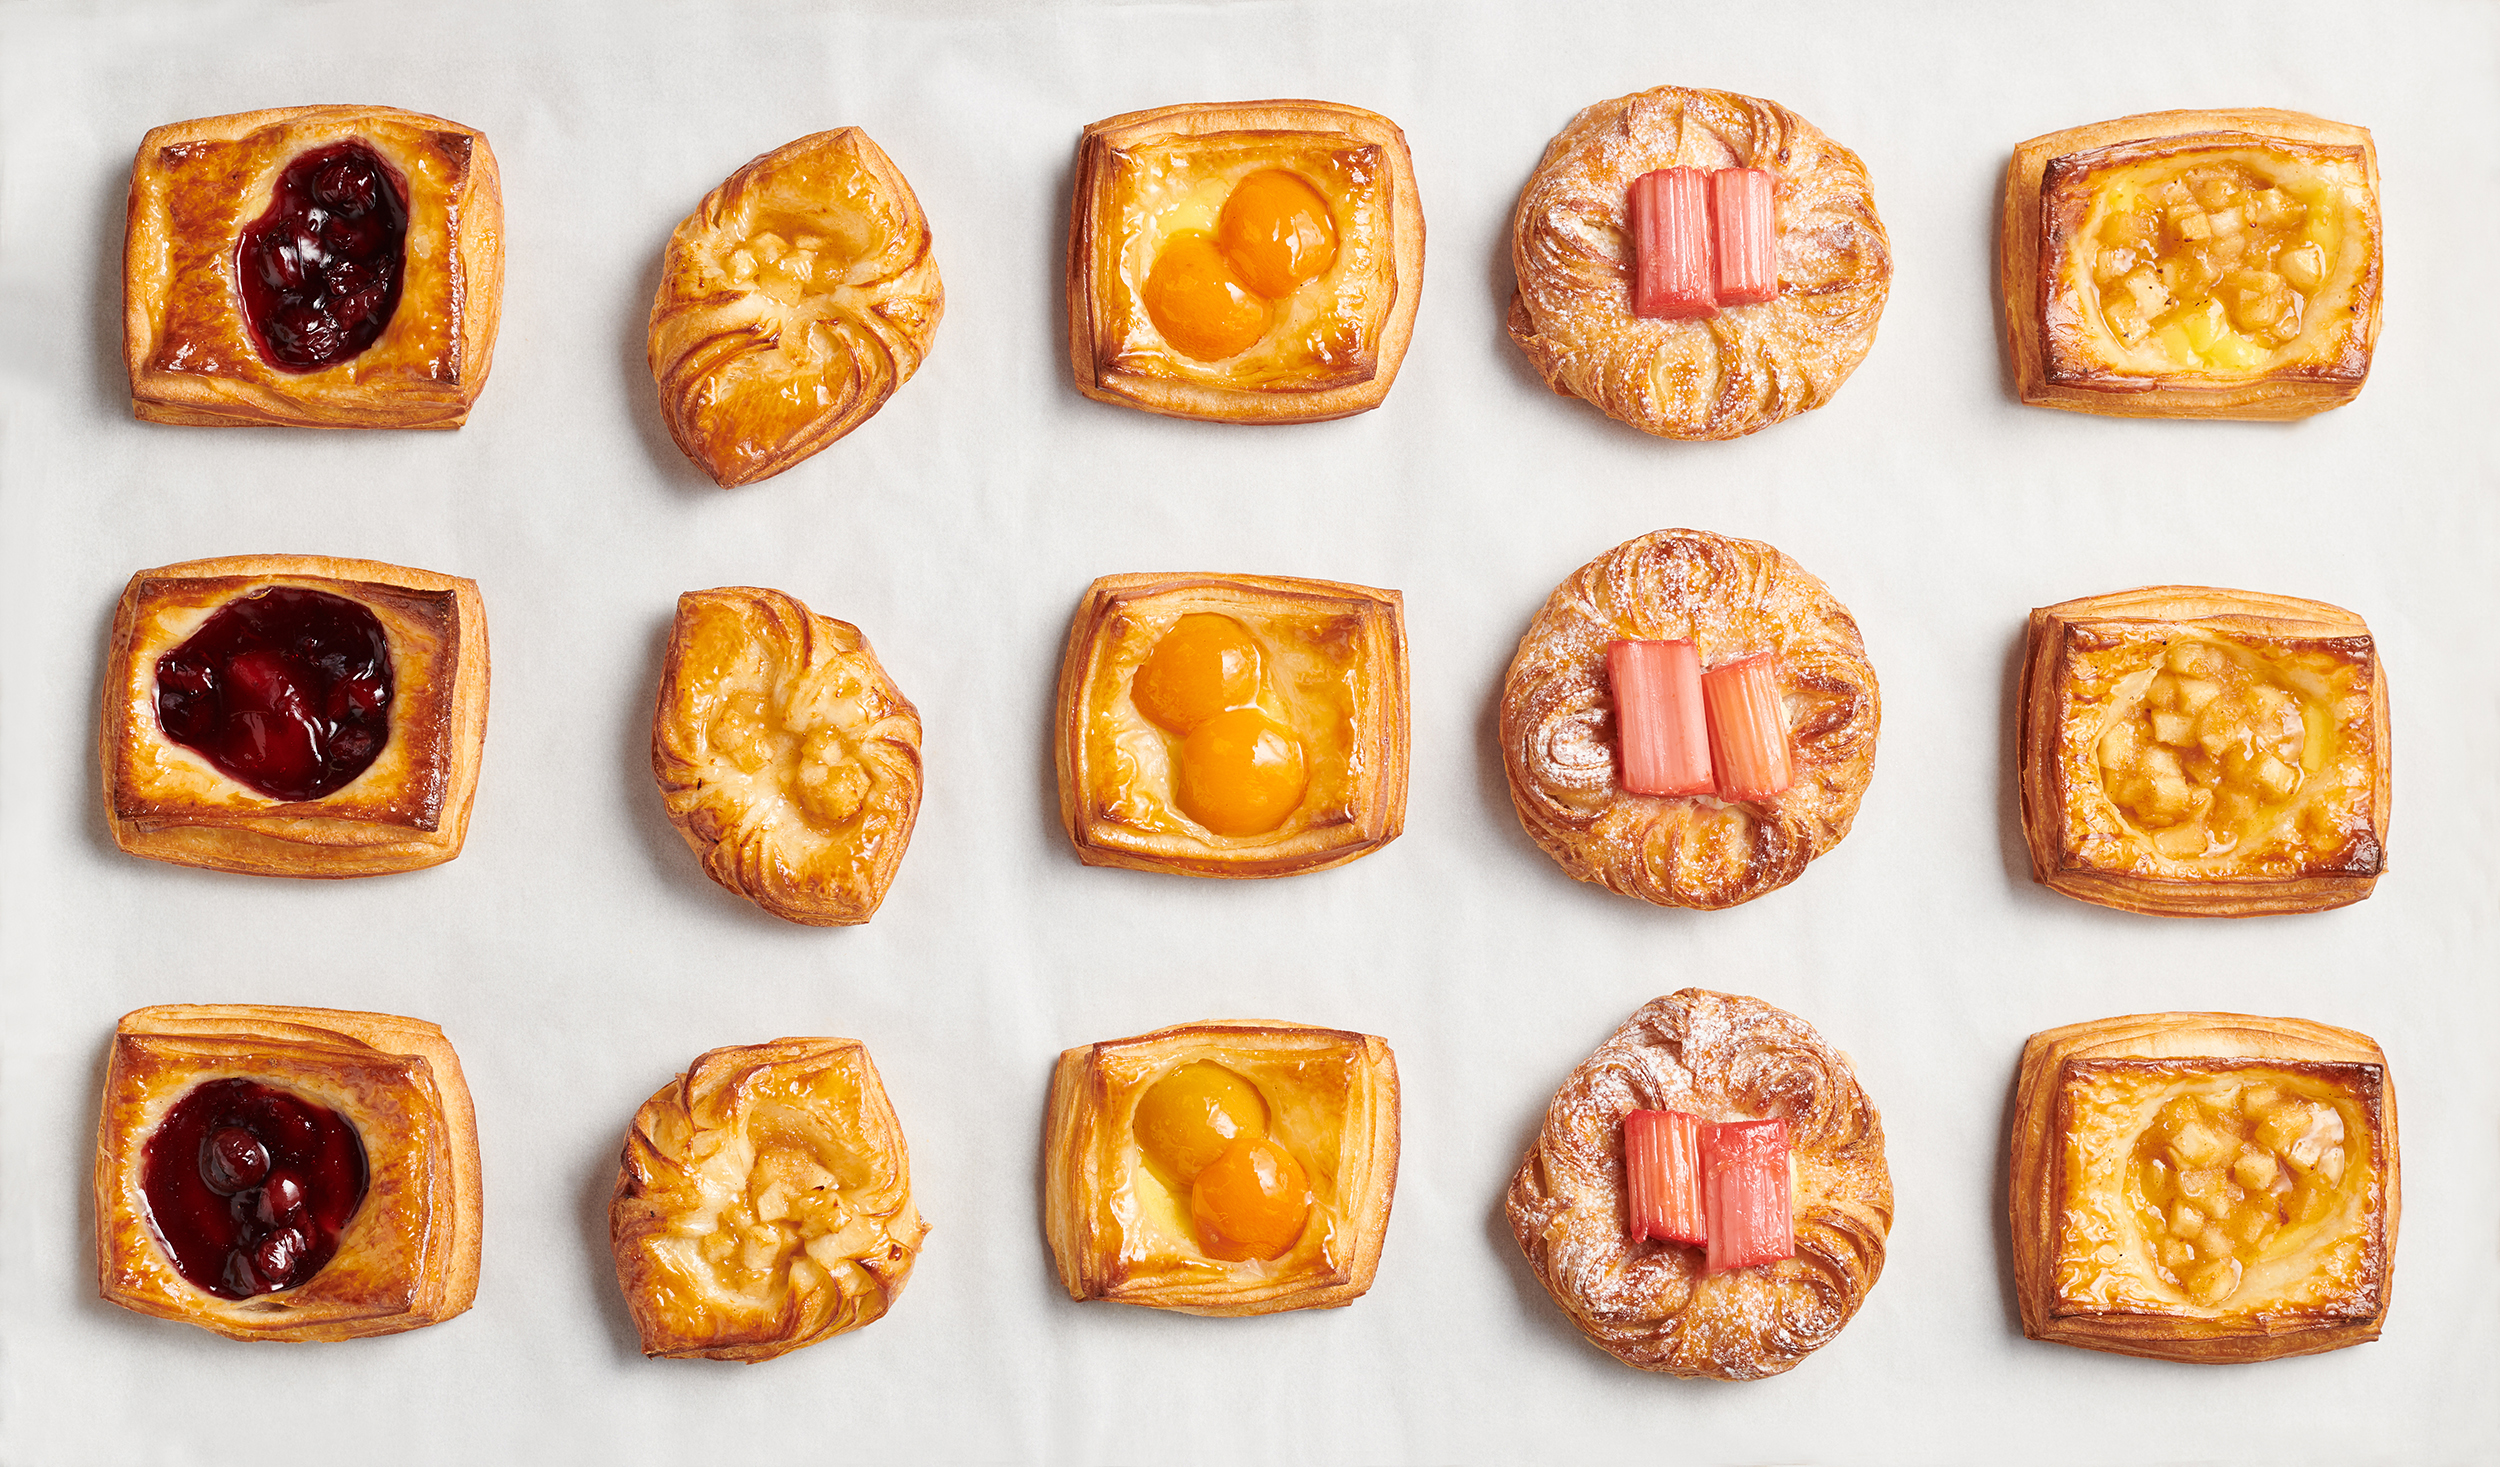 food photography of a range of patisserie